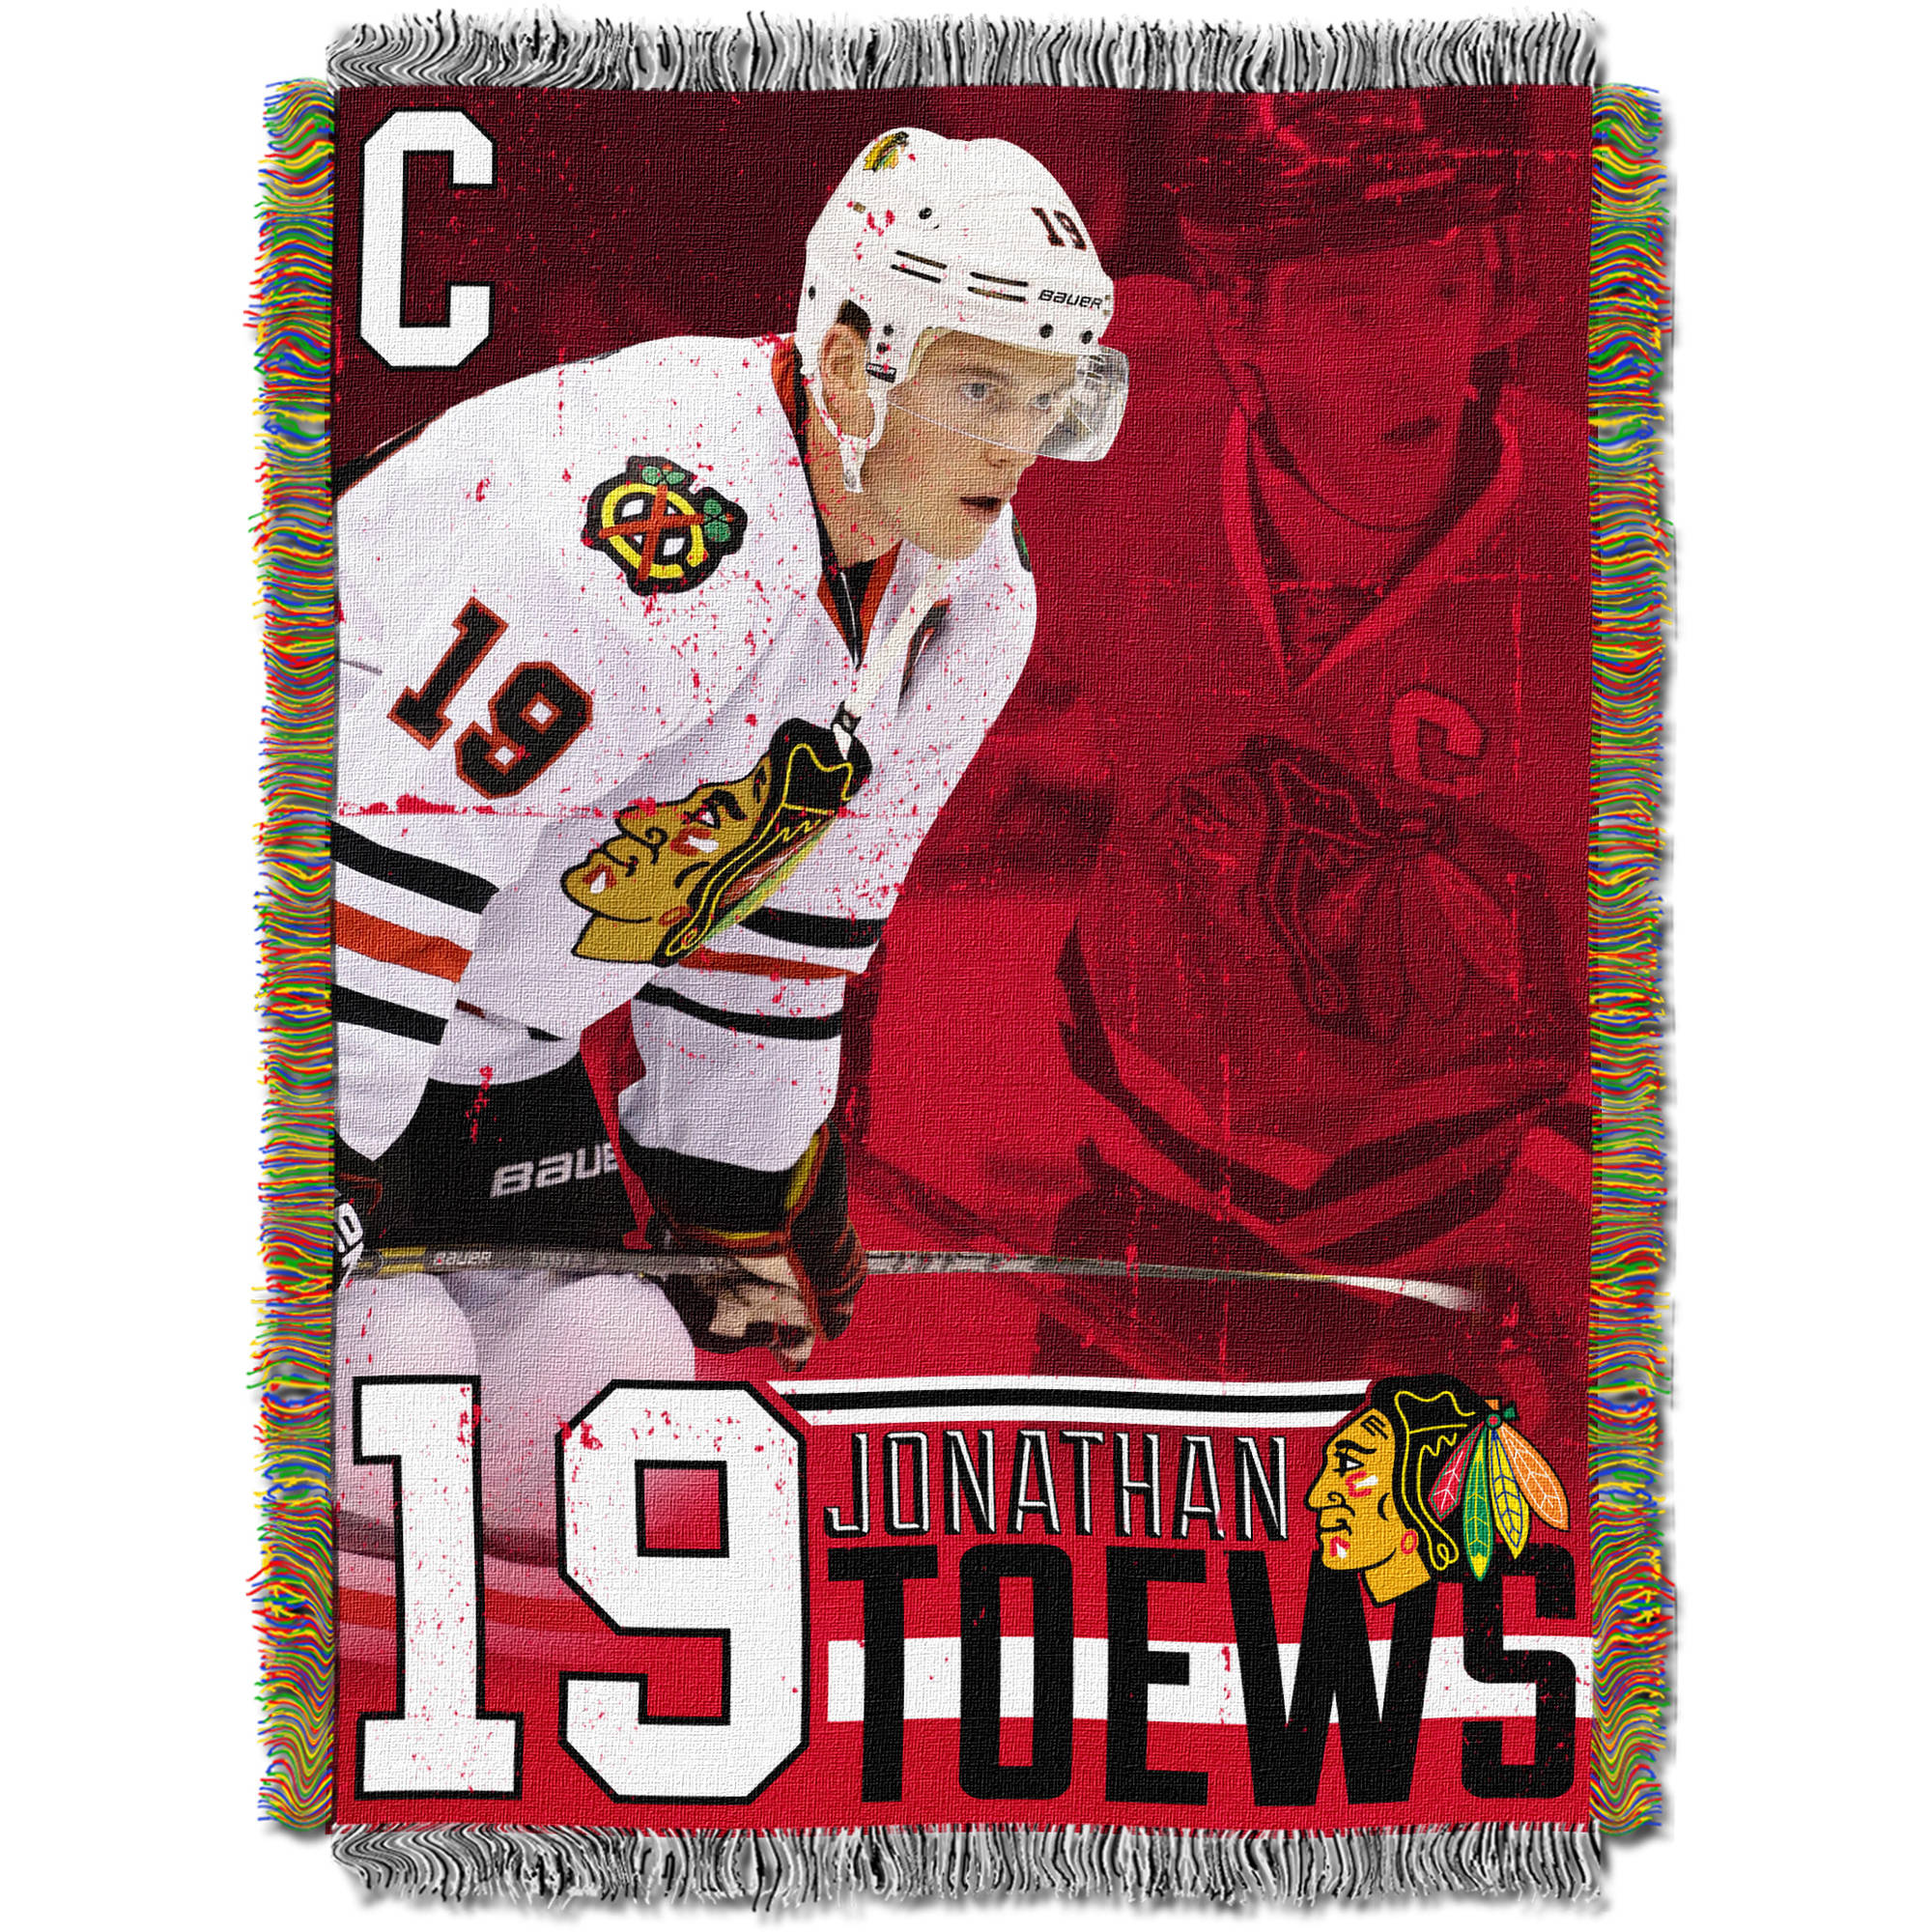 "NHL 48"" x 60"" Players Series Tapestry Throw, Johnathan Toews"